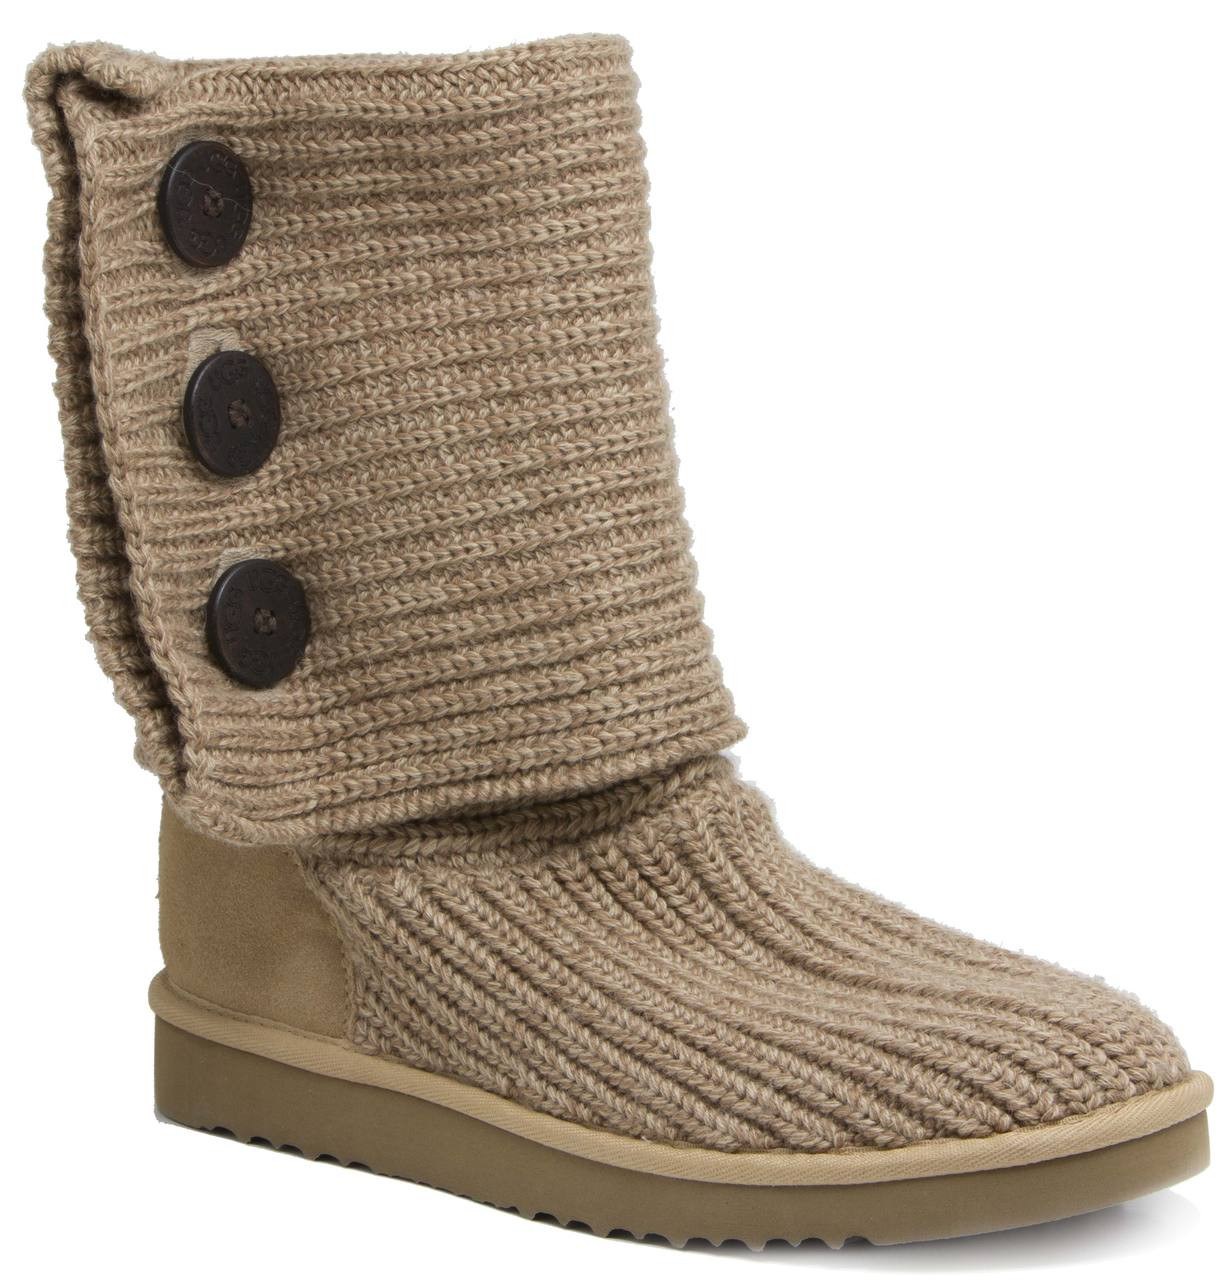 ugg boots cardy nz